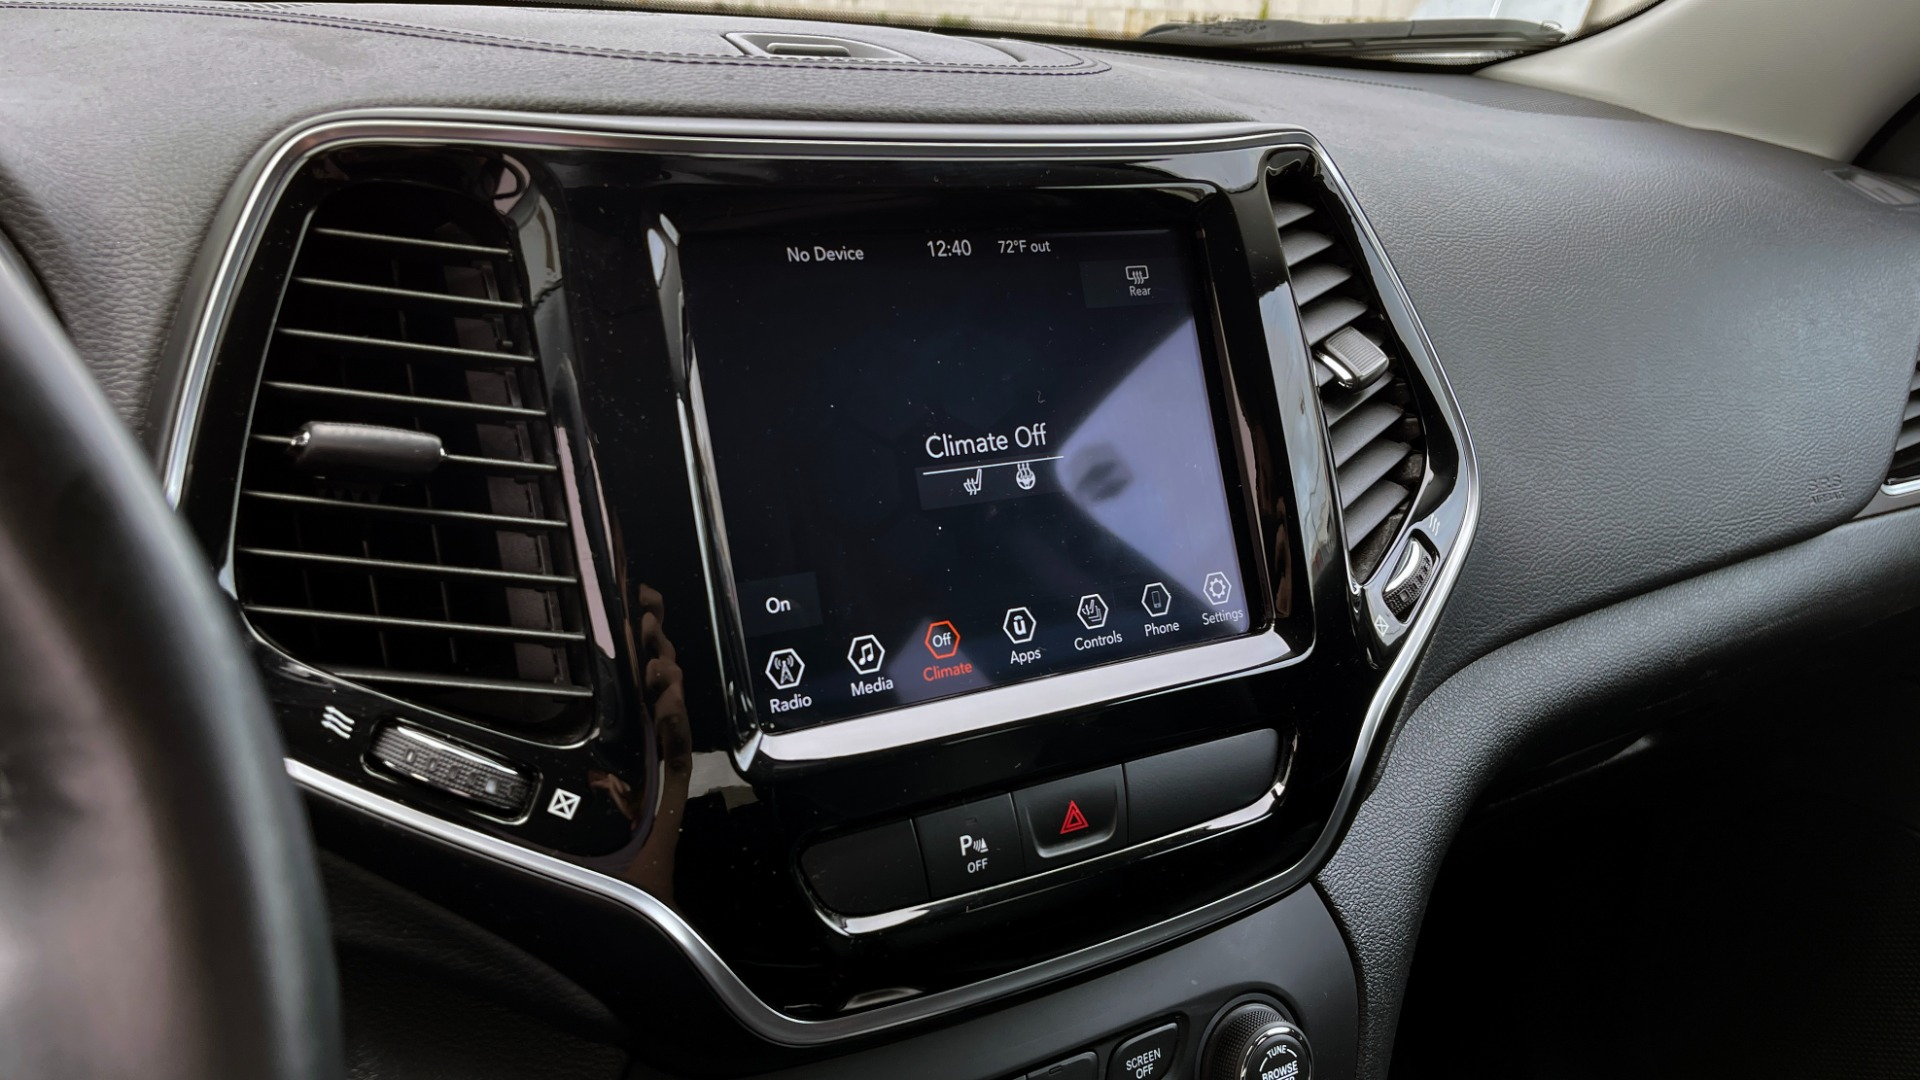 Used 2019 Jeep CHEROKEE LIMITED 2.4L / FWD / APPLE CARPLAY / KEYLESS-GO / REARVIEW for sale $24,395 at Formula Imports in Charlotte NC 28227 35